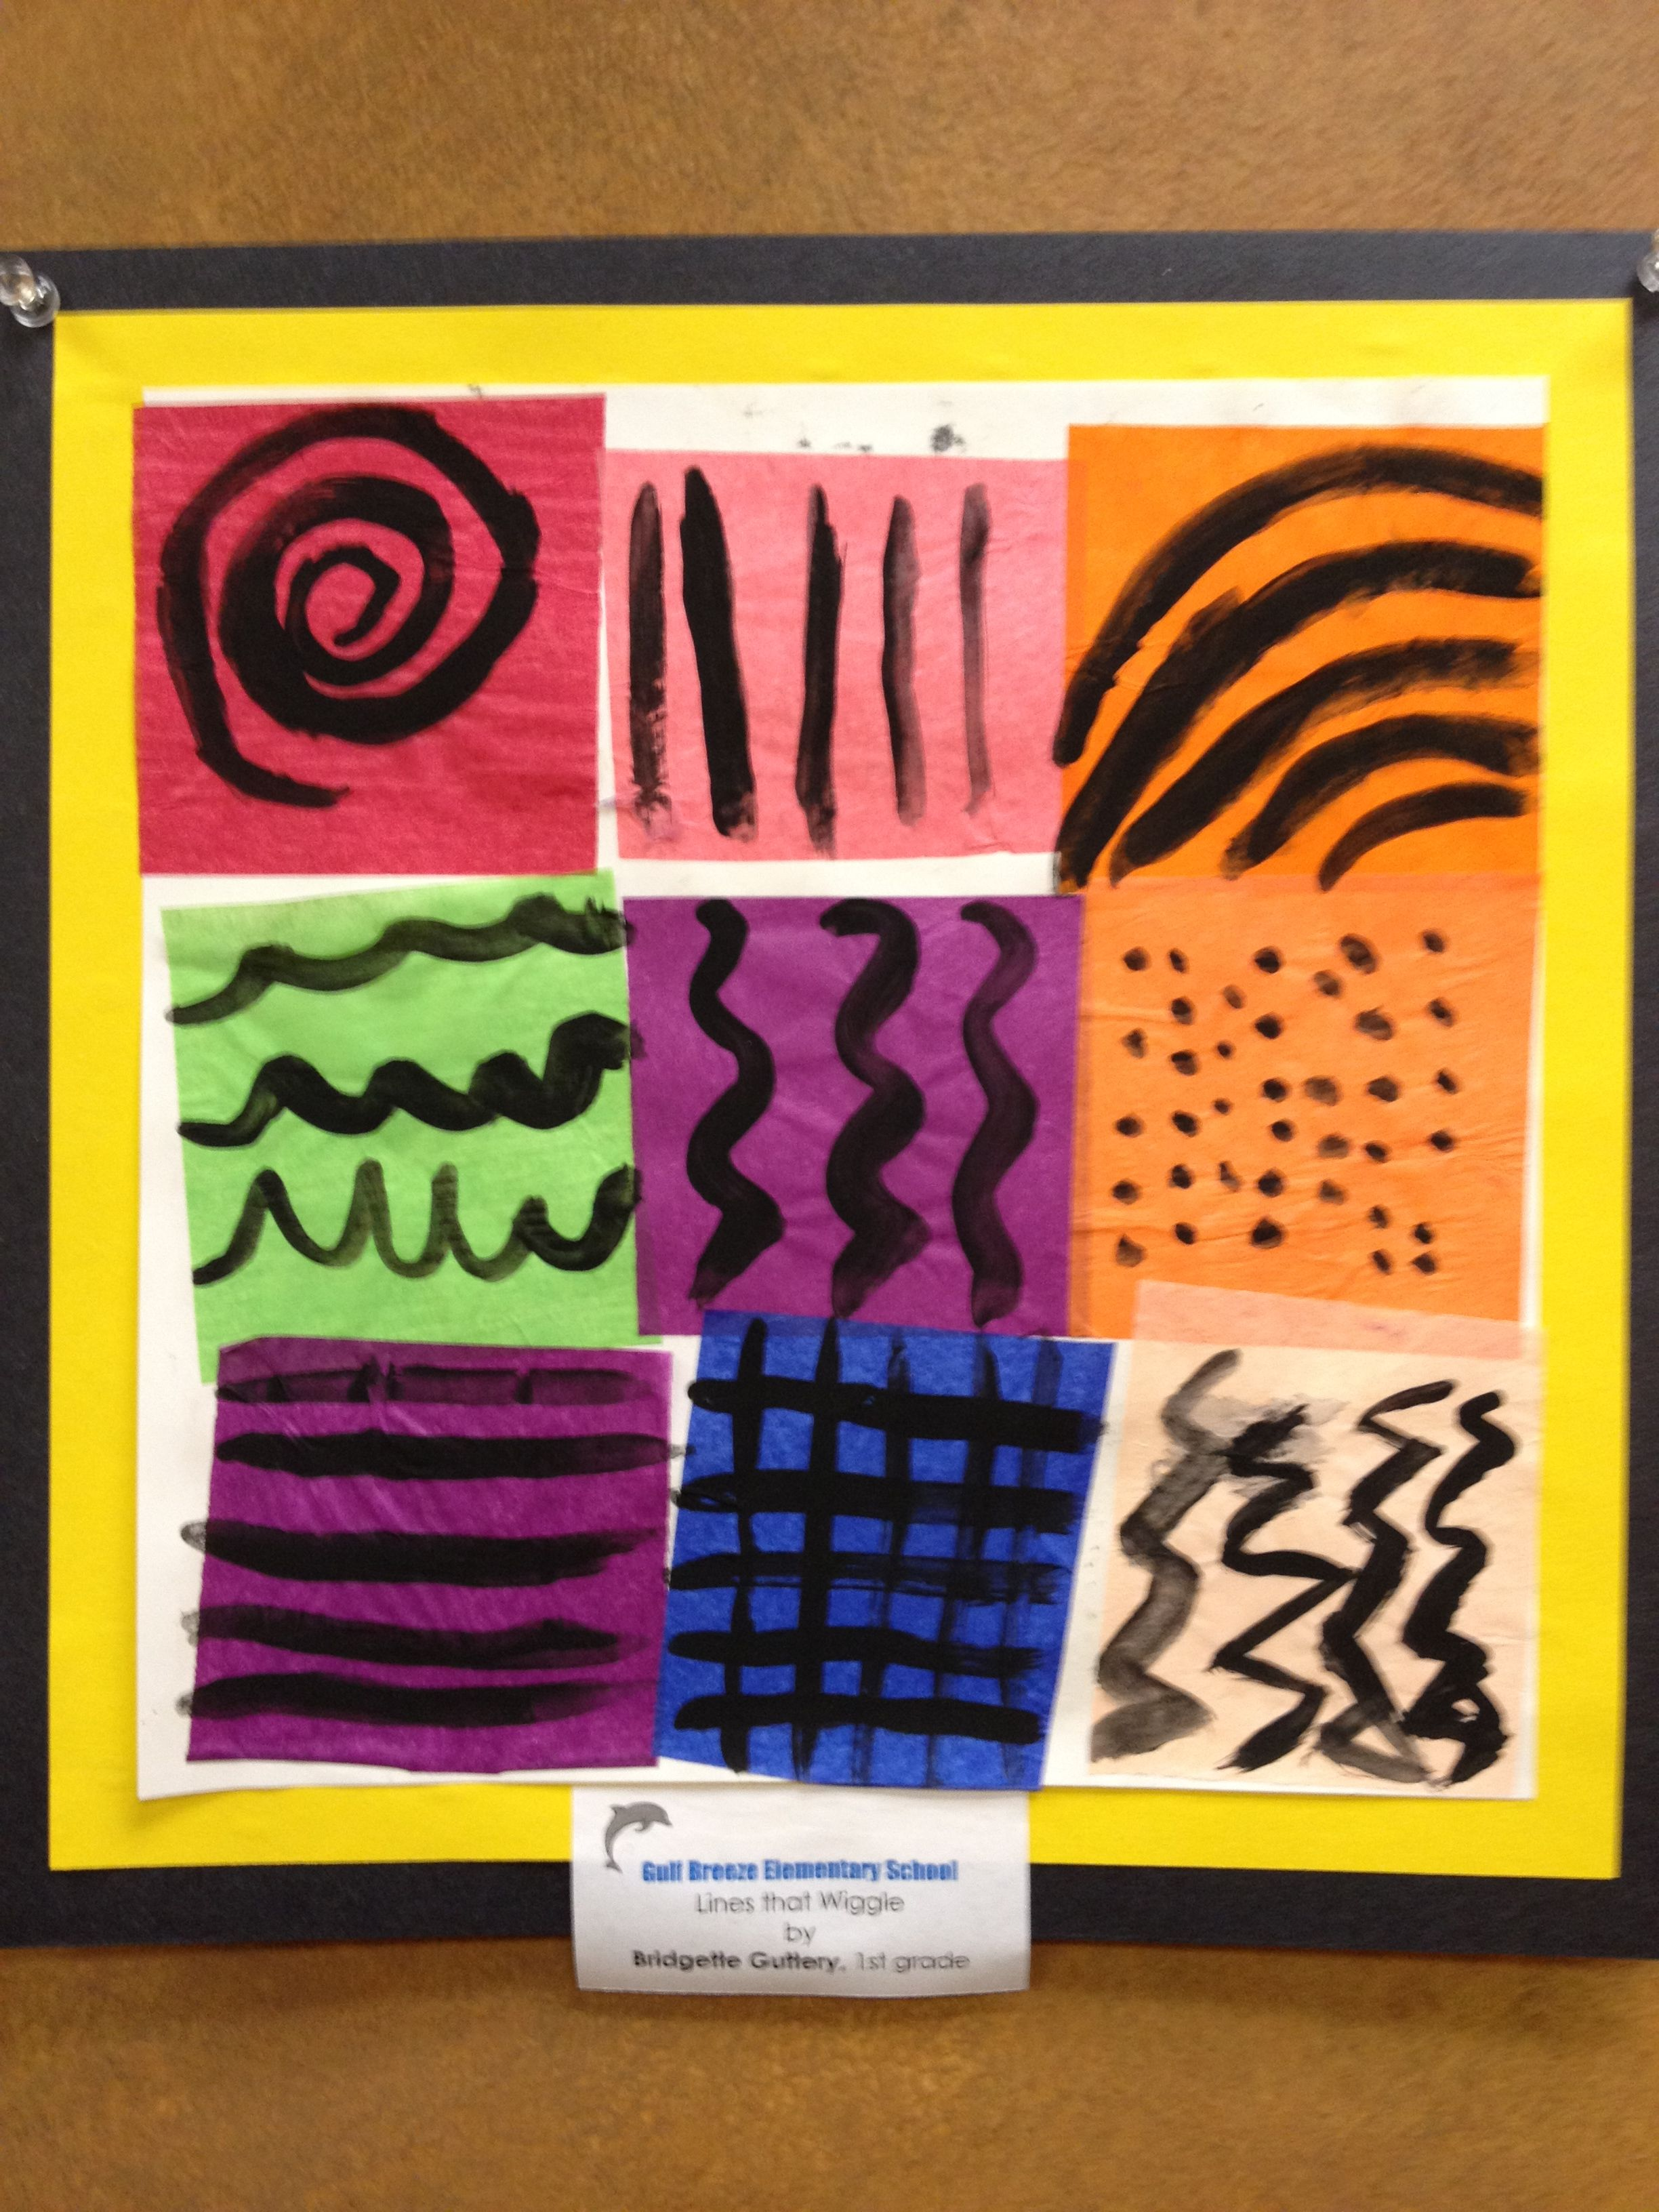 8eeca1d3c50ad831354022a4bb1bba56 Kindergarten And First Grade Art Projects on using shapes, end school, for kindergarten, fall scarecrow, one day, cutest beginning year, eric carle,